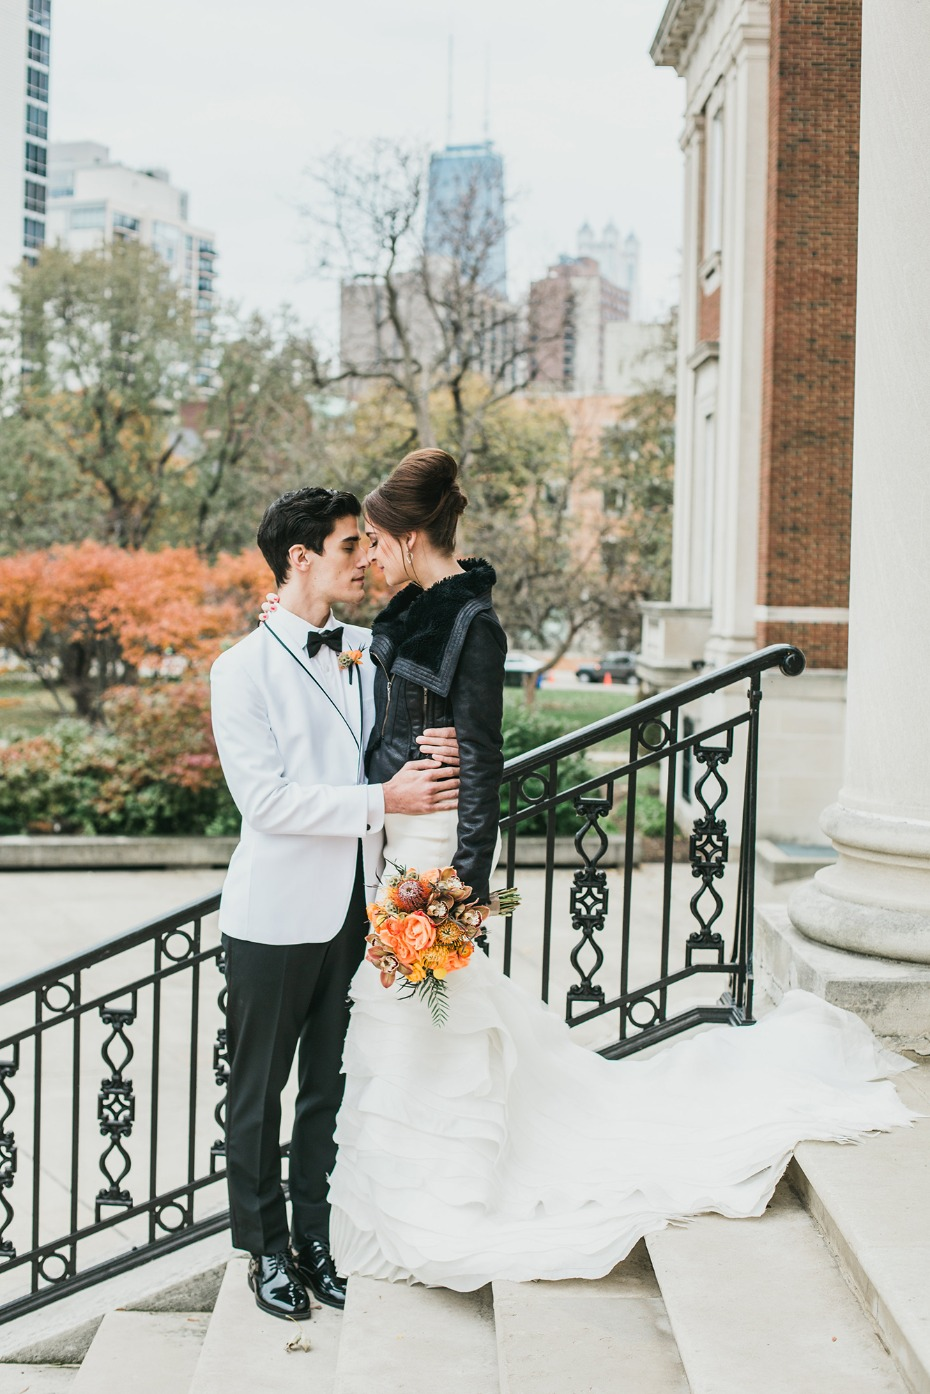 Modern wedding ideas in Chicago